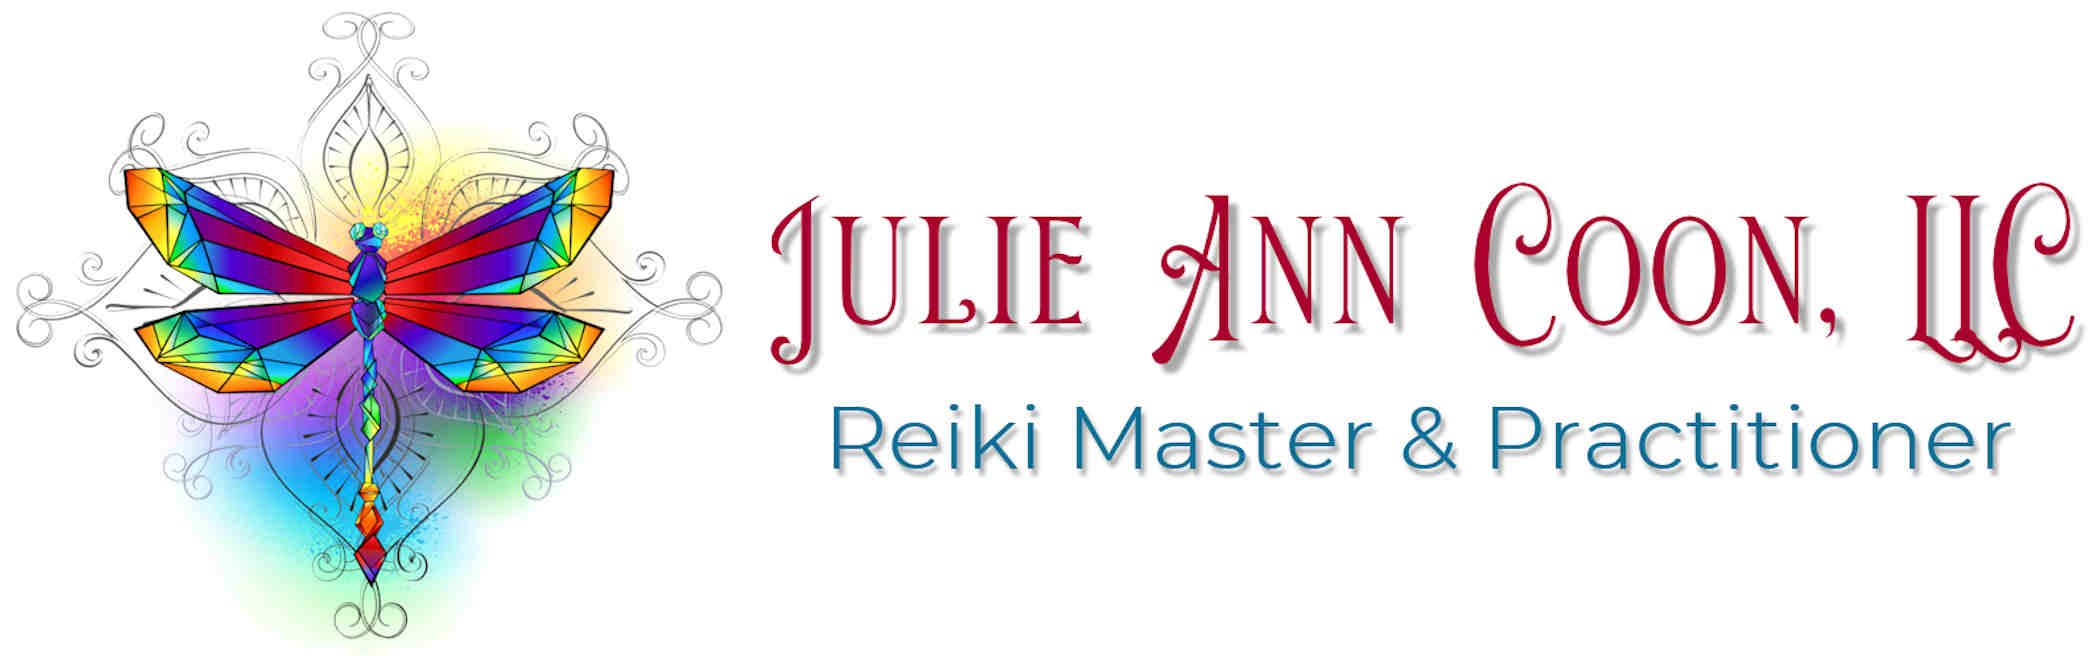 Julie Ann Coon, LLC